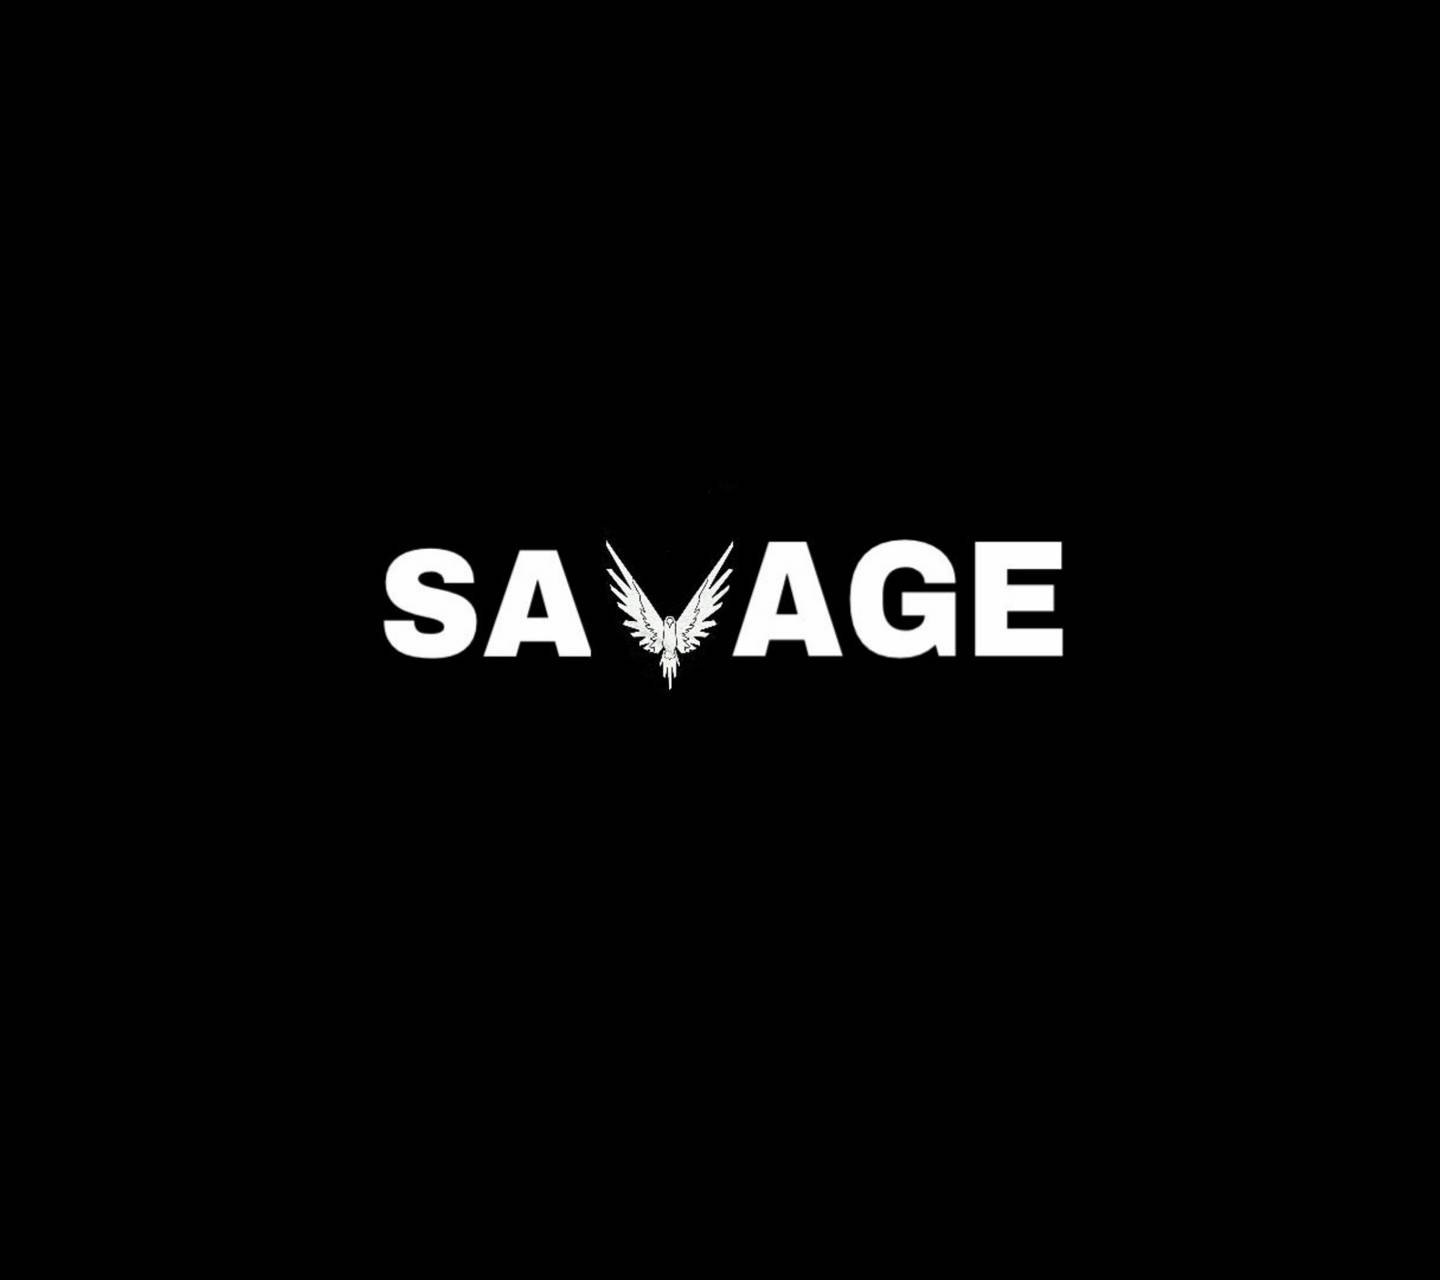 Savage Wallpapers Top Free Savage Backgrounds